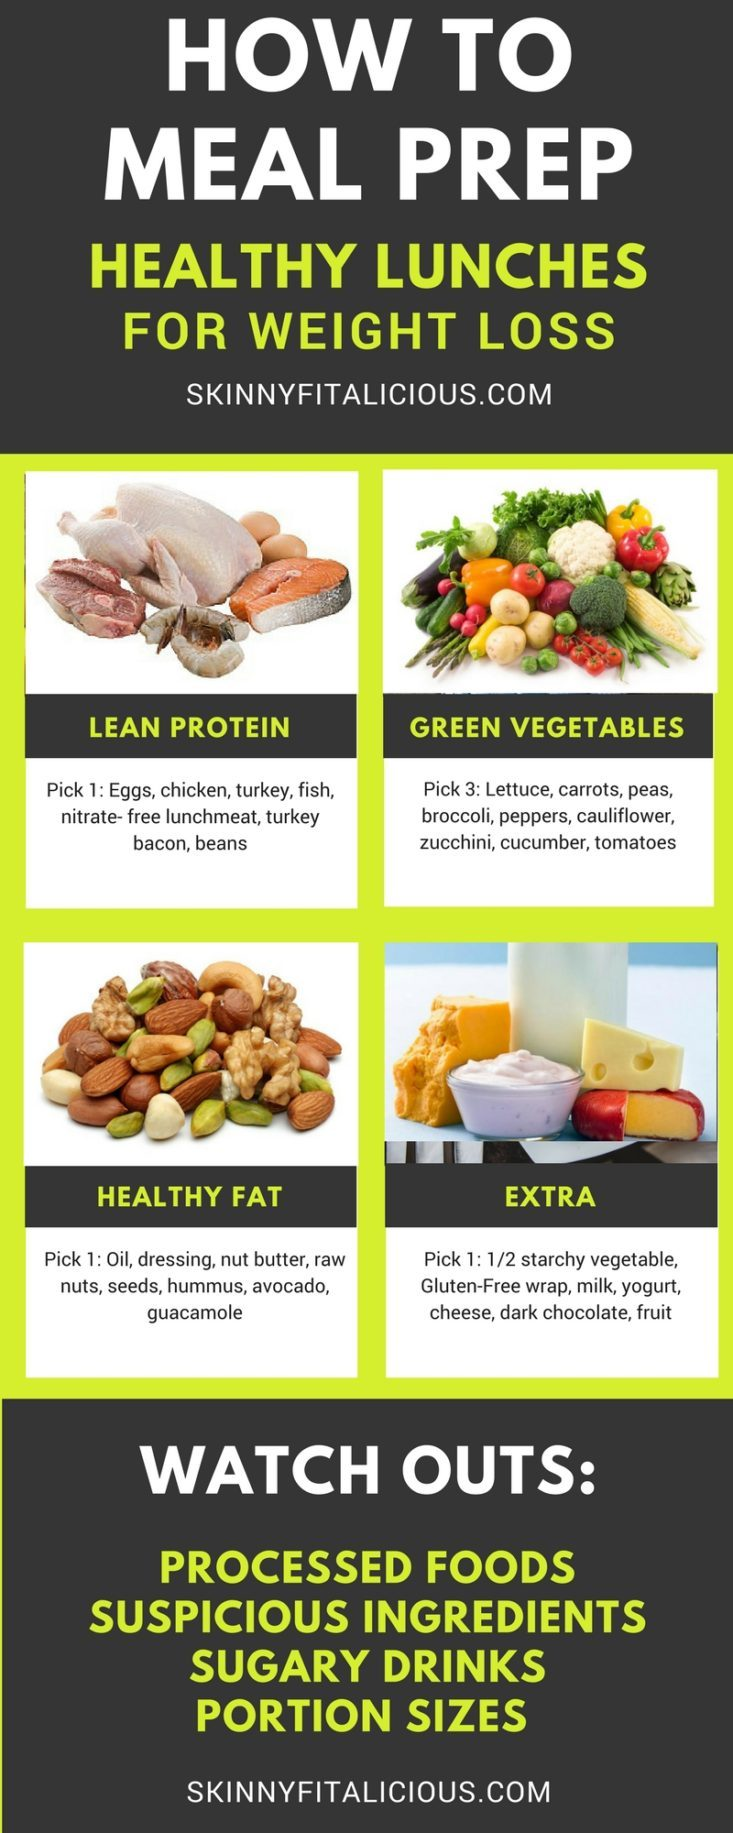 How to MealPrep Healthy Lunches for Weight Loss as well as tips for pairing foods together properly so you're eating the right portions.